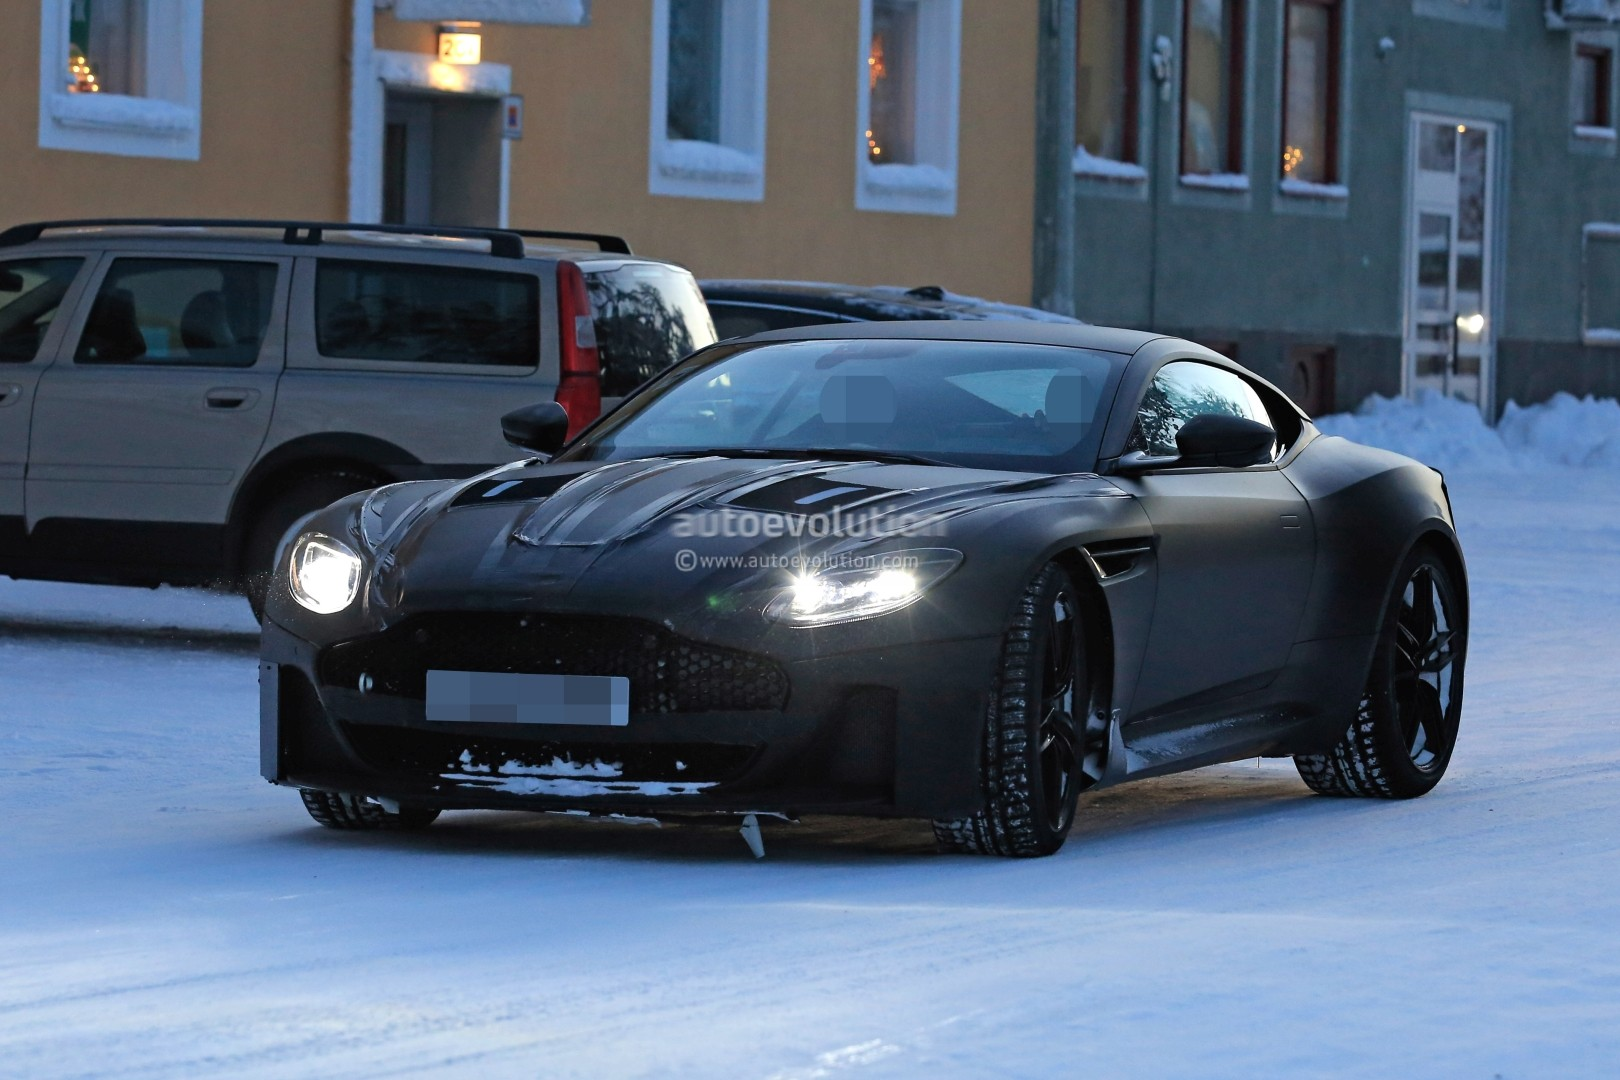 Spyshots: 2019 Aston Martin Vanquish Testing In the Snow ...